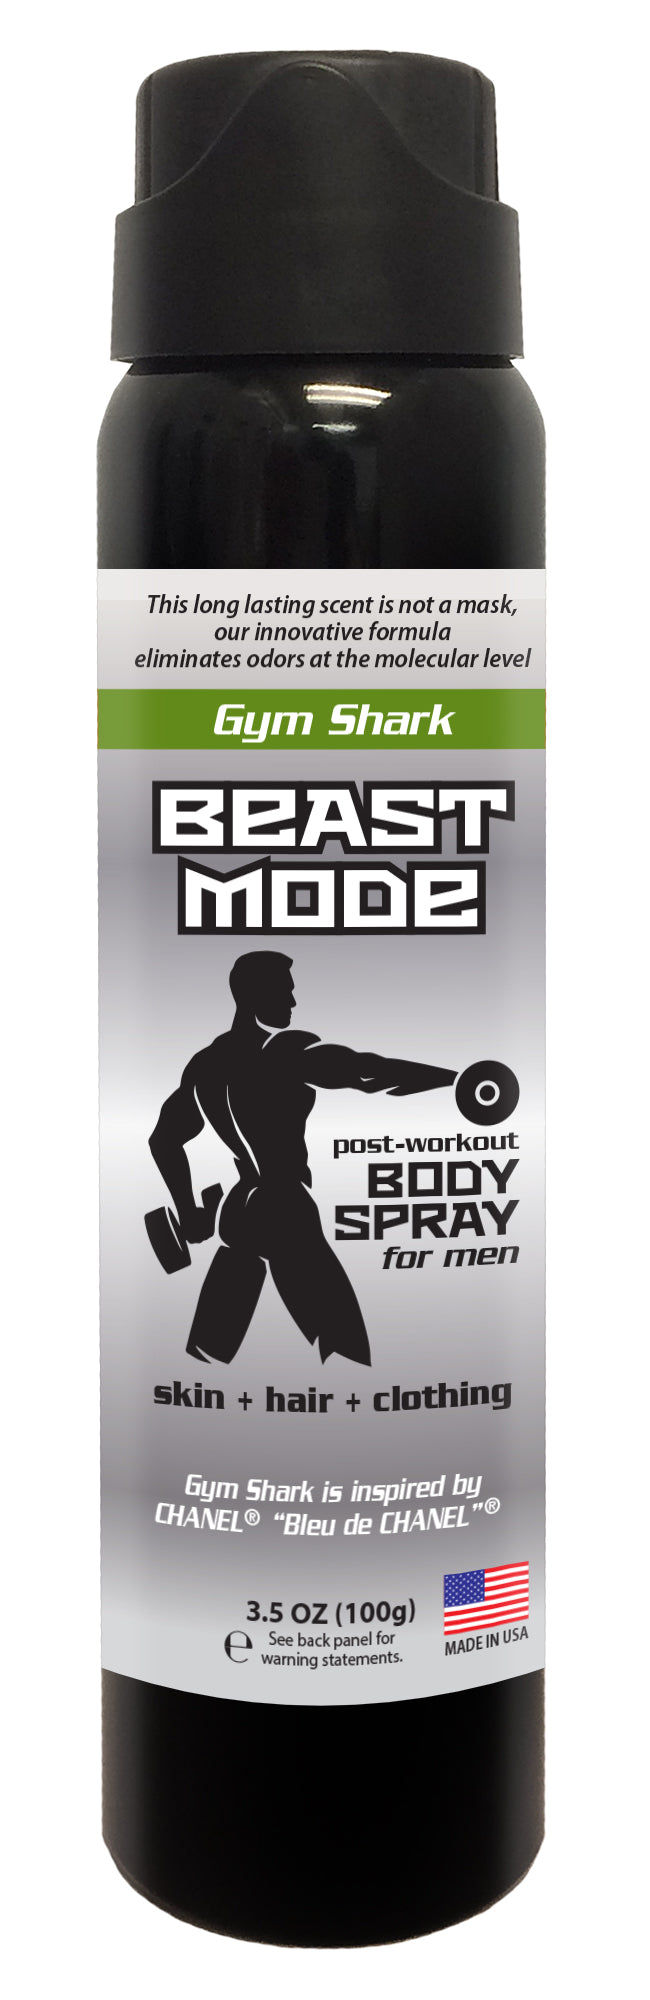 Beast Mode - Men's Post Workout Body Spray - 3.5 oz (GYM SHARK)